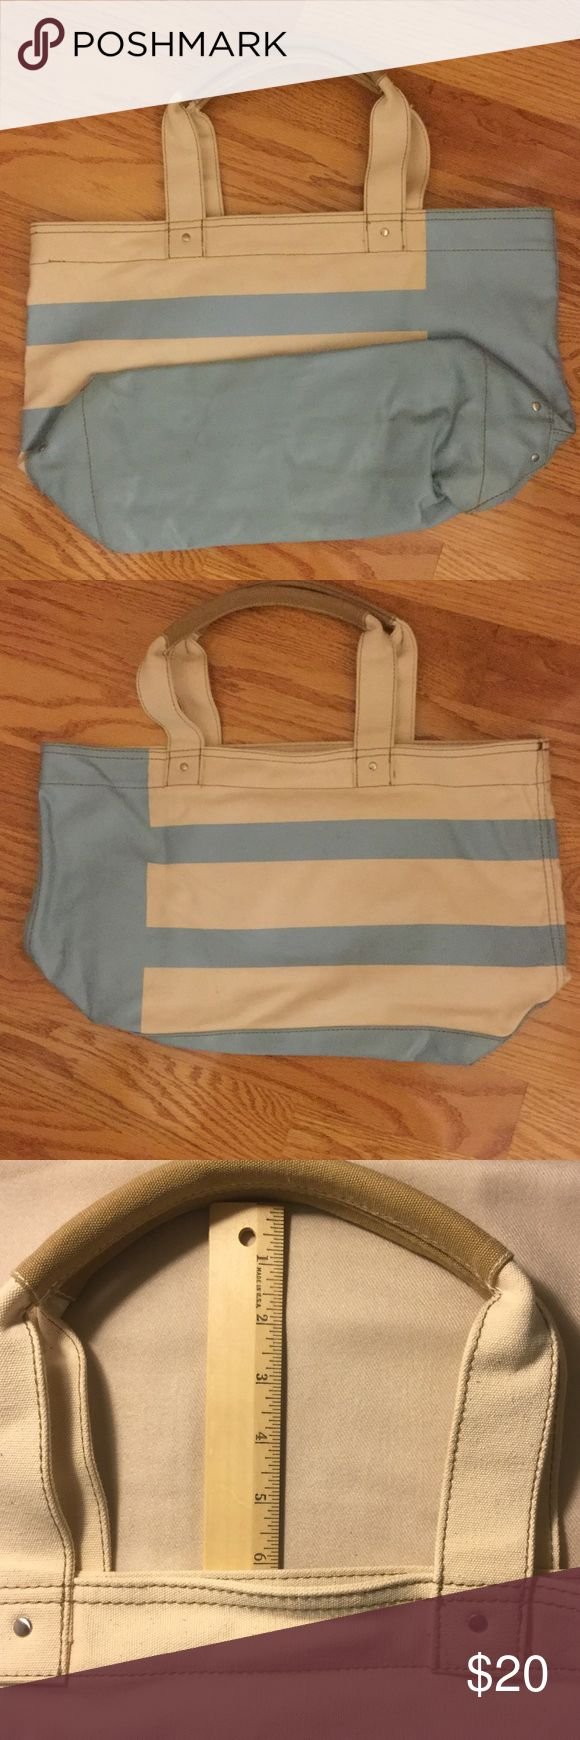 Baby Blue/Cream Tote bag Baby Blue/Cream Tote bag Bags Totes